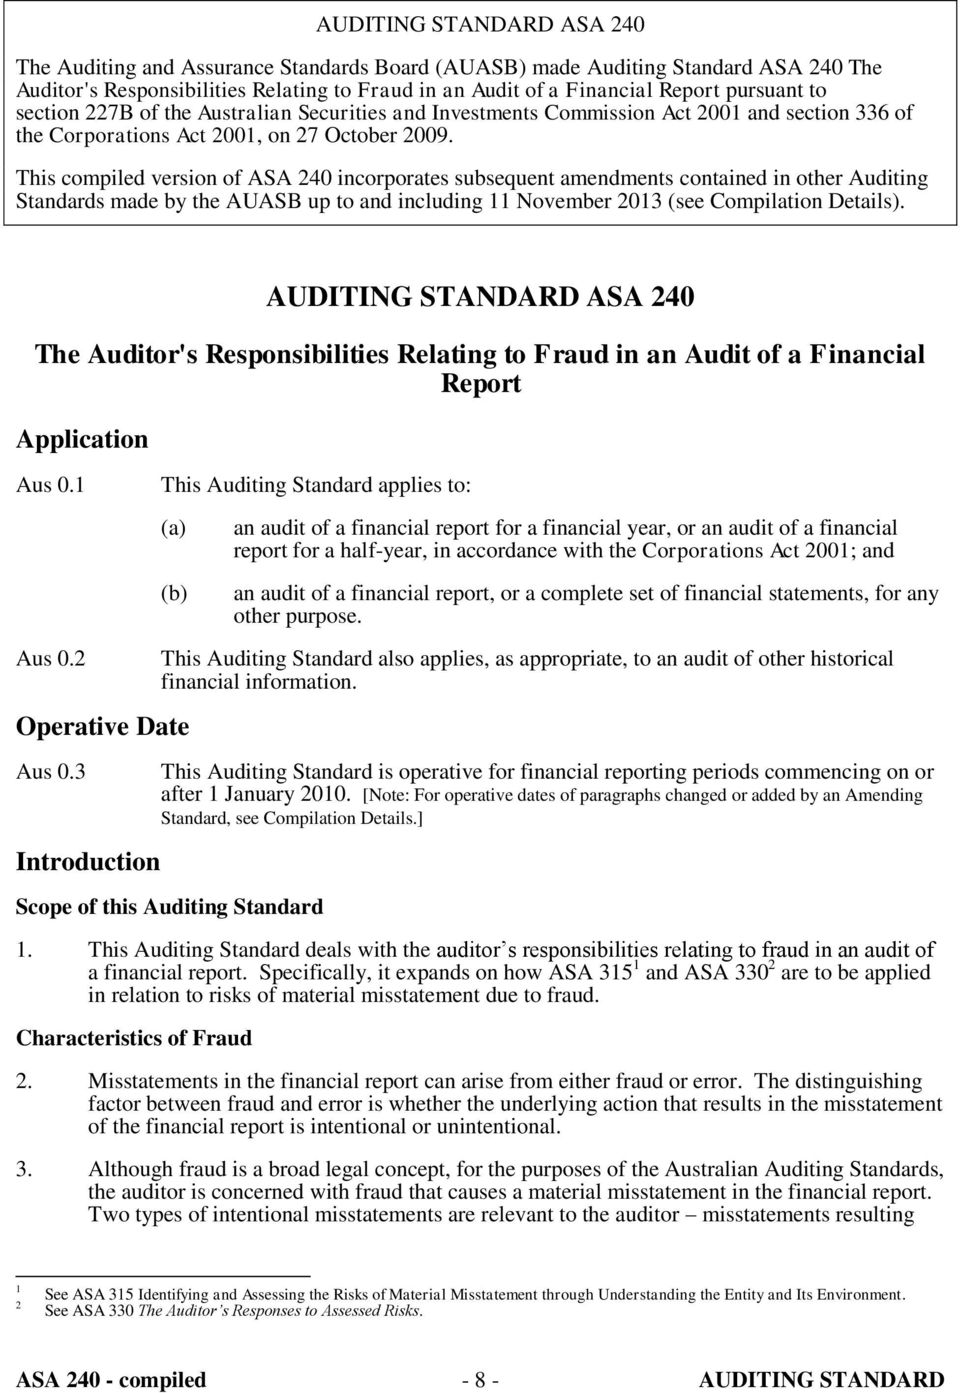 This compiled version of ASA 240 incorporates subsequent amendments contained in other Auditing Standards made by the AUASB up to and including 11 November 2013 (see Compilation Details).